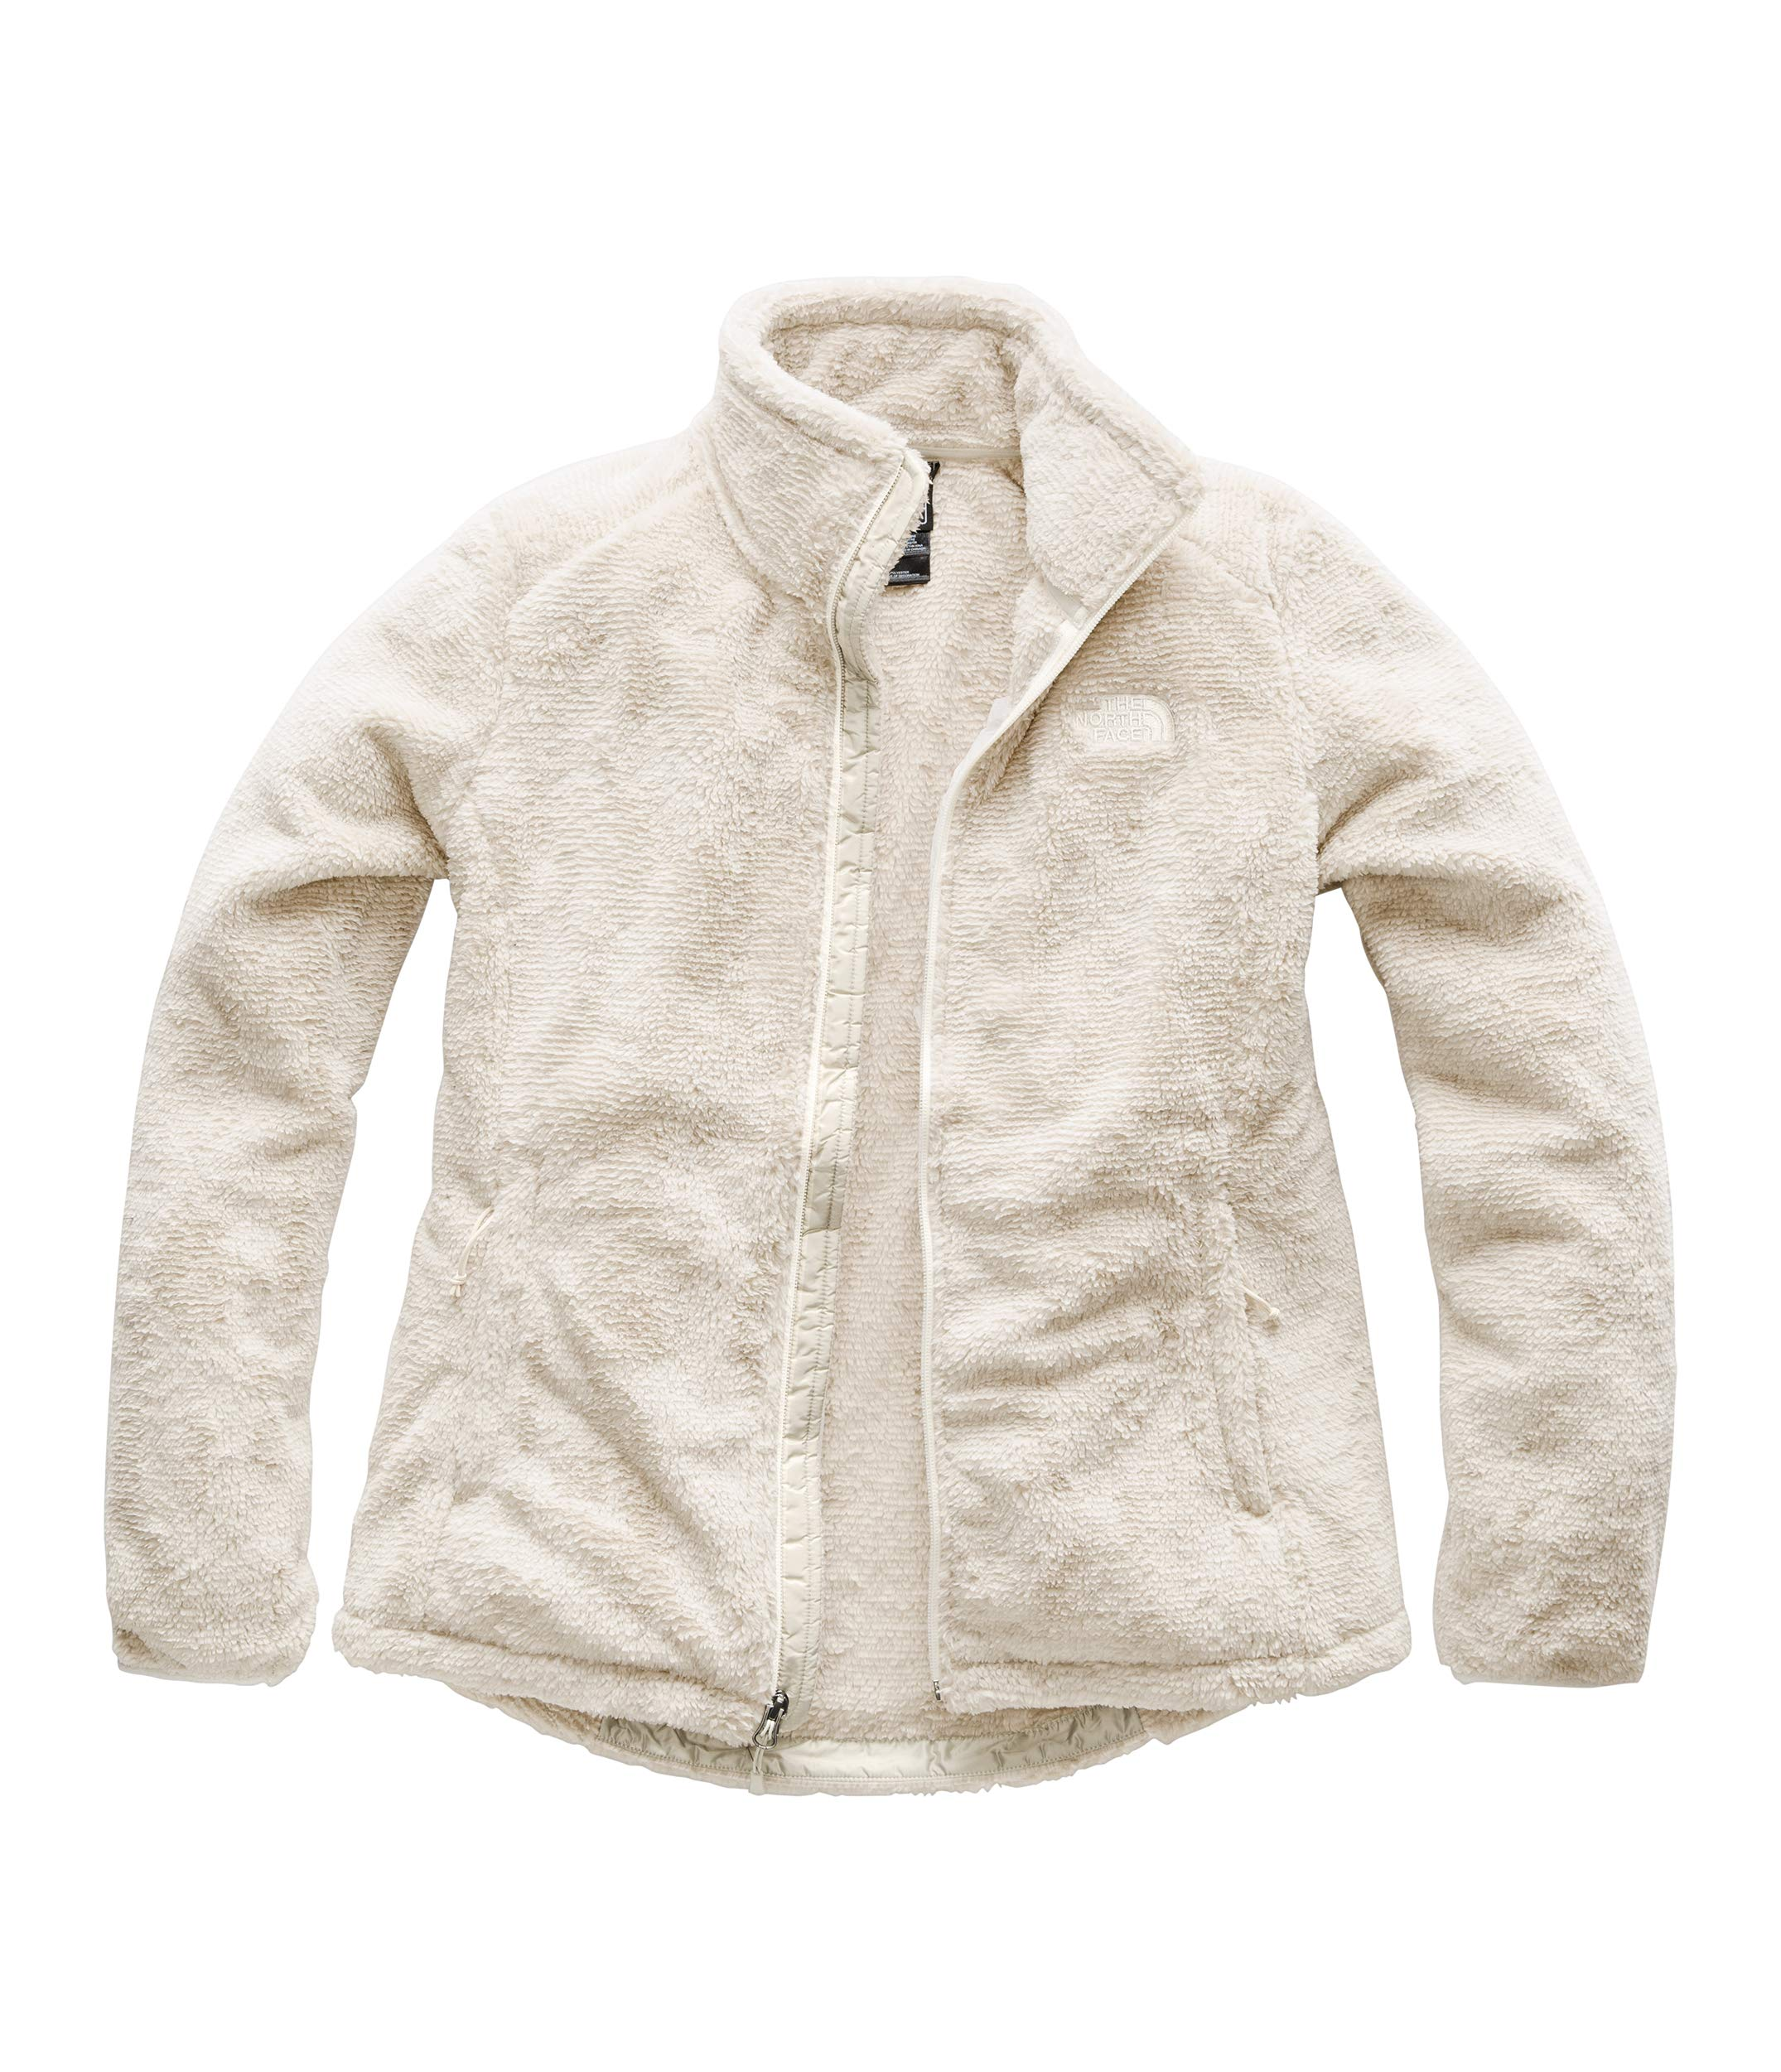 The North Face Women's Osito 2 Jacket Vintage White/Peyote Beige Stripe X-Small by The North Face